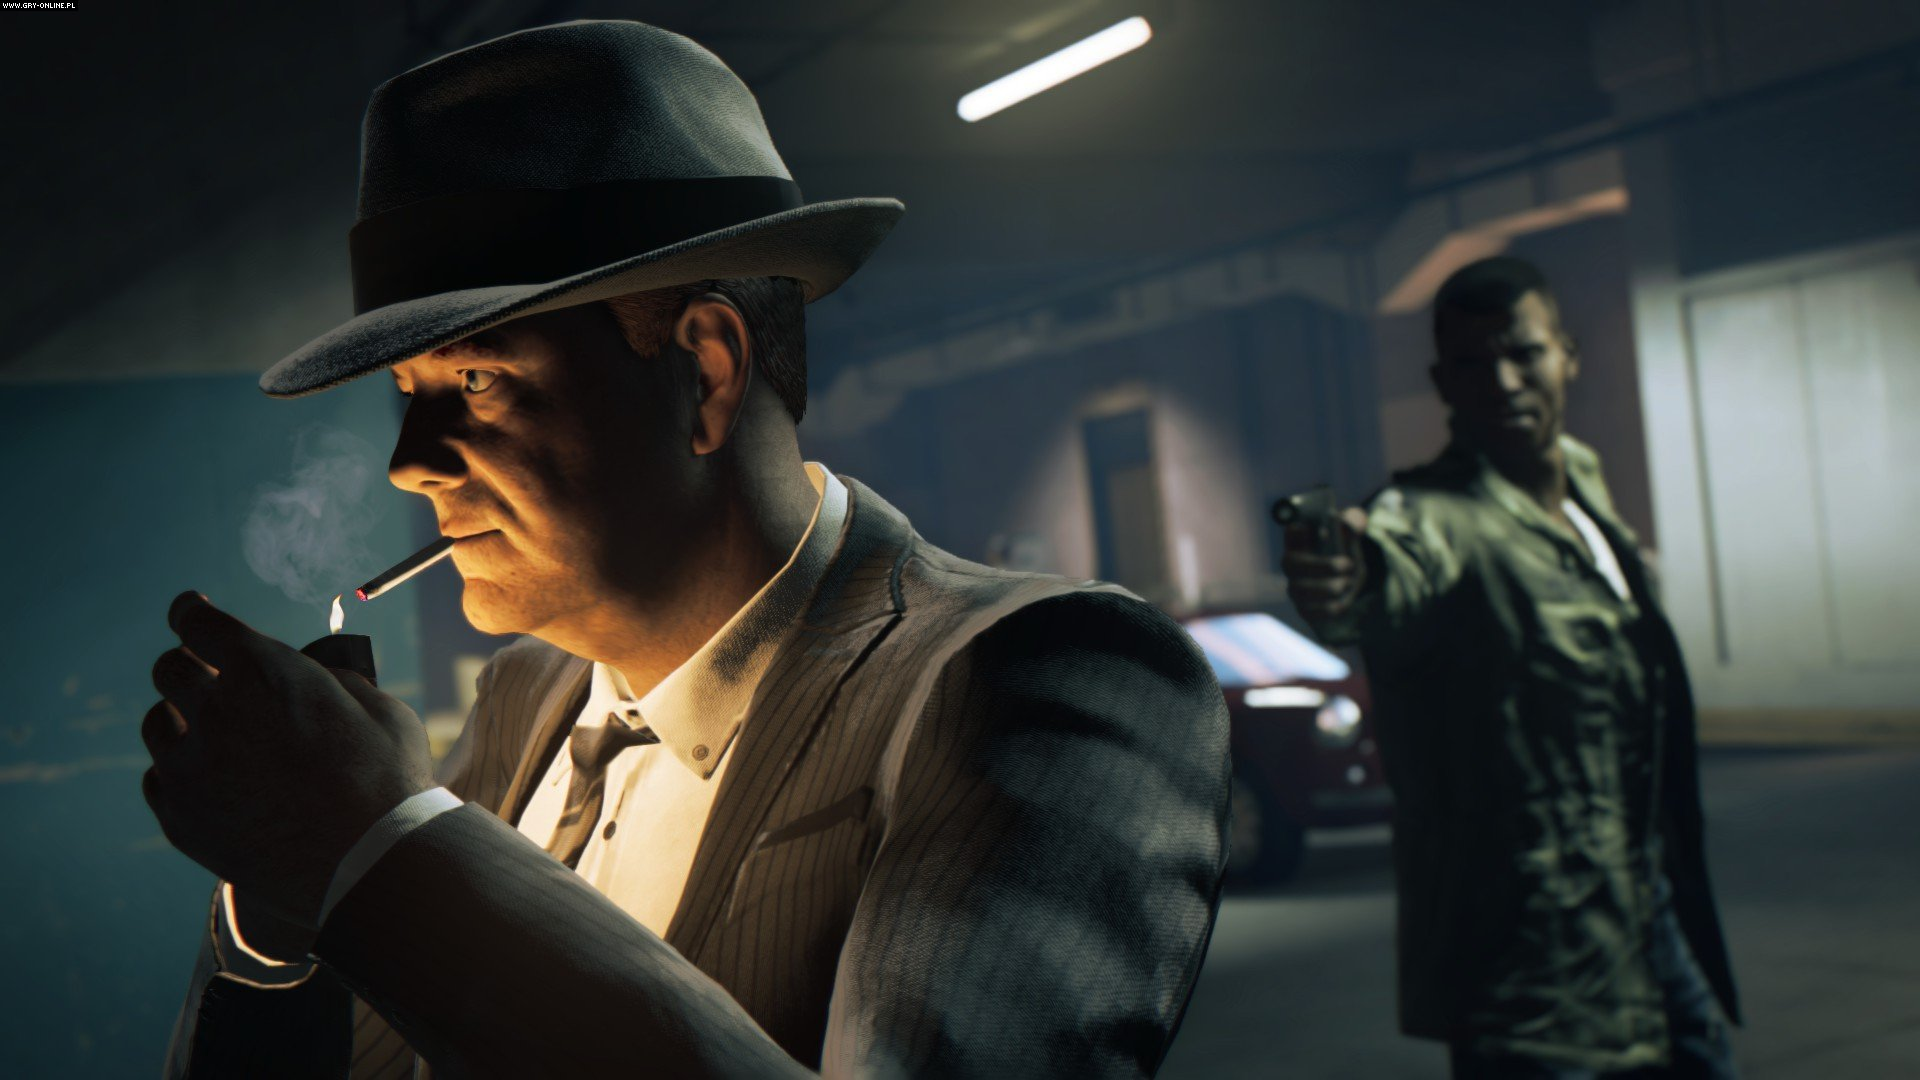 Mafia III PC, PS4, XONE Games Image 37/51, Hangar 13, 2K Games